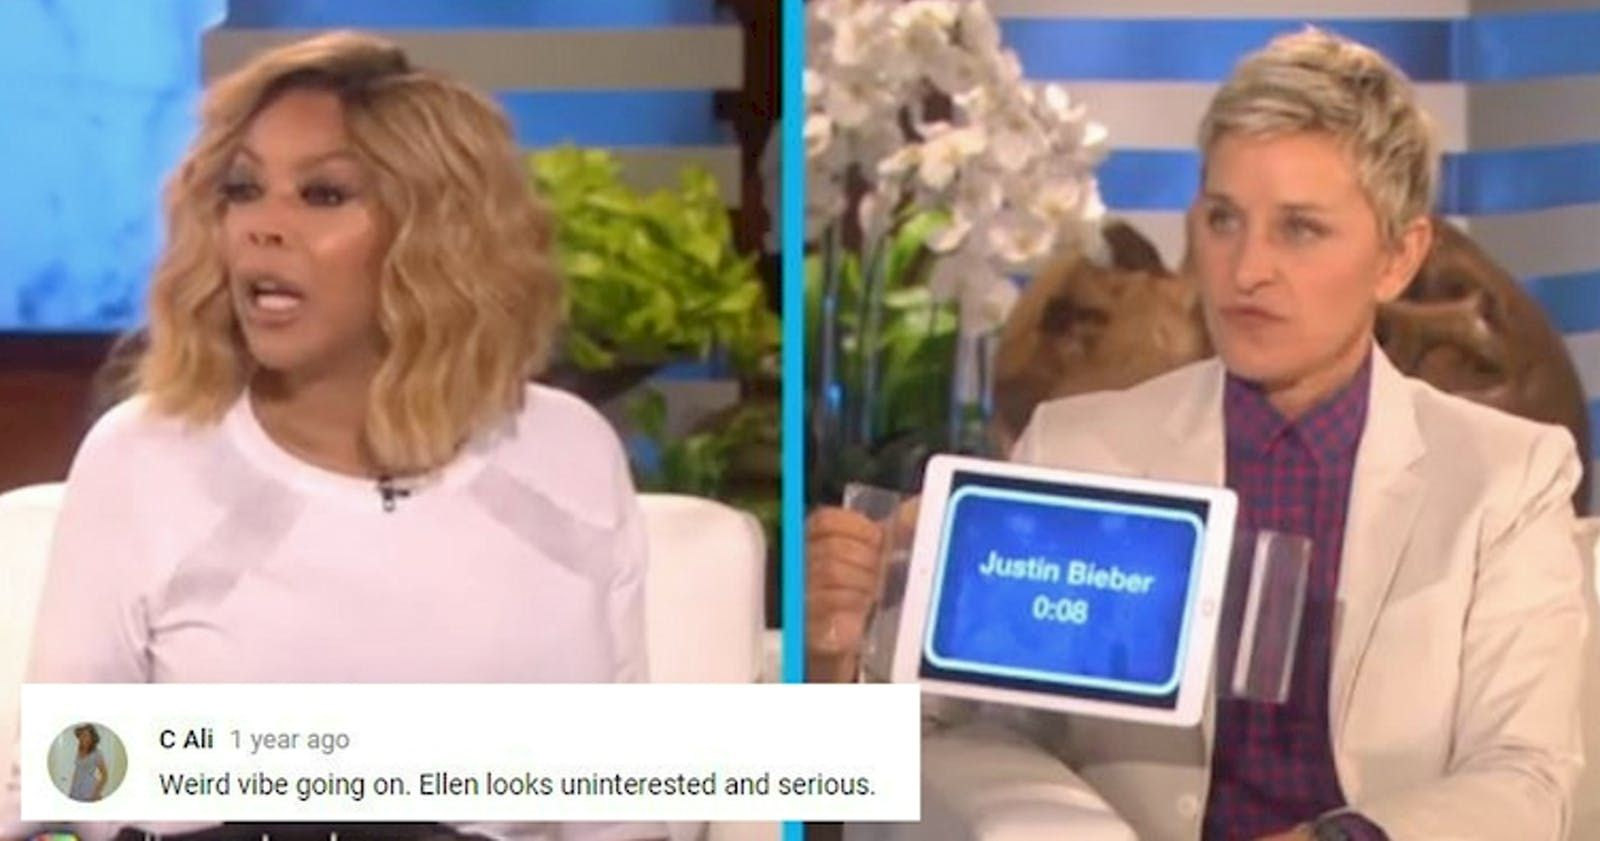 11+ Times Things Got Super Uncomfortable on 'The Ellen DeGeneres Show'